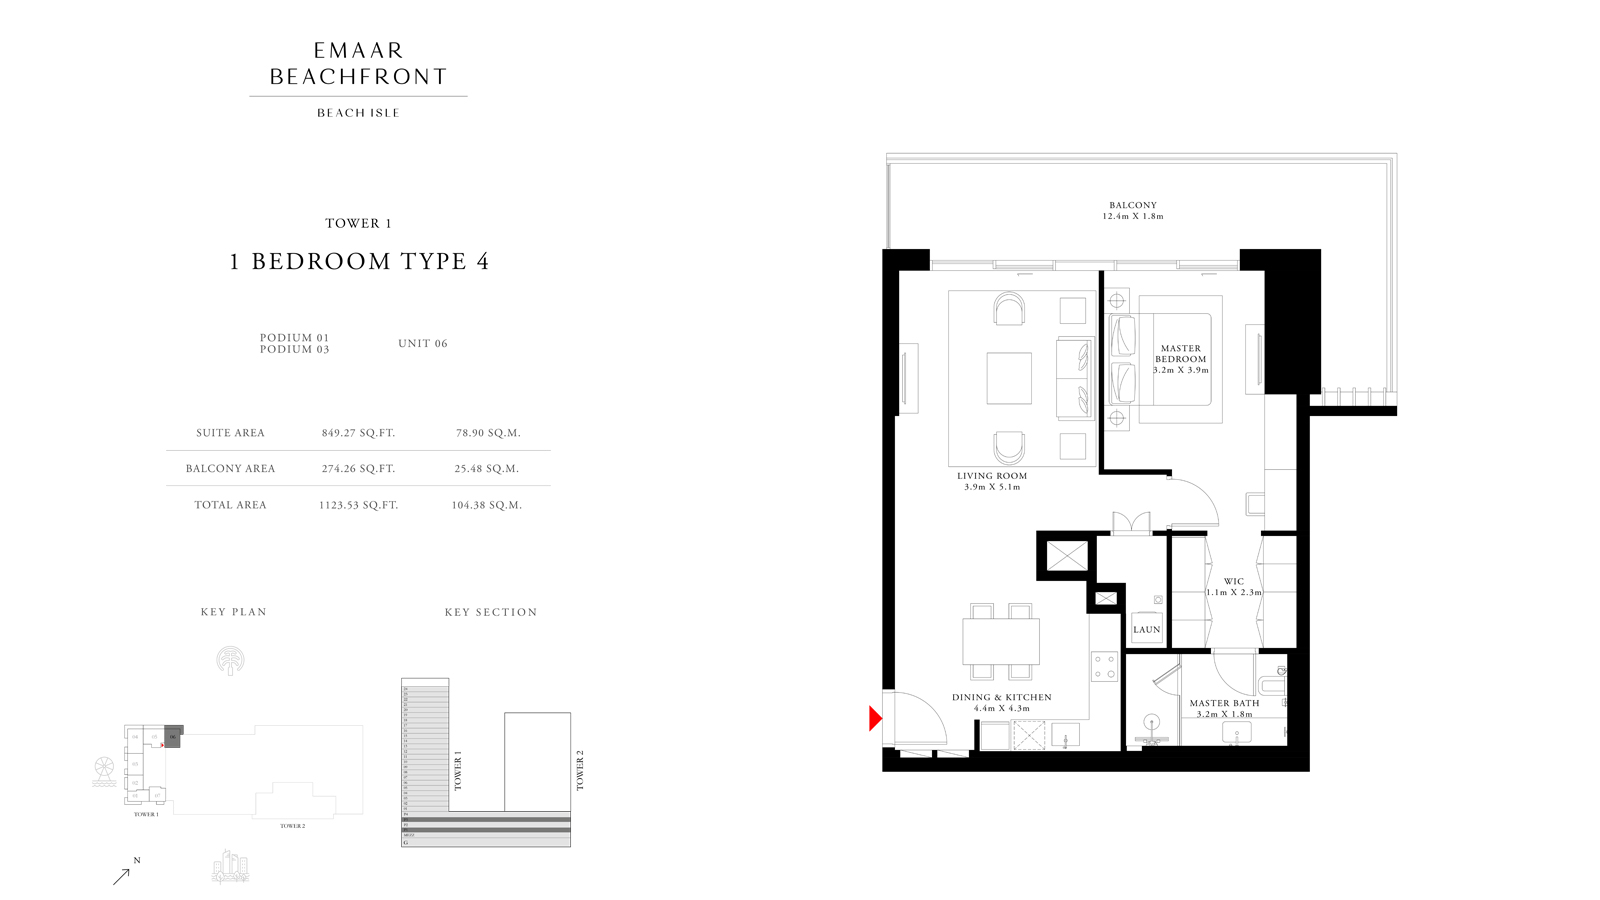 1 Bedroom Type 4 Tower 1, Size 1123 sq ft